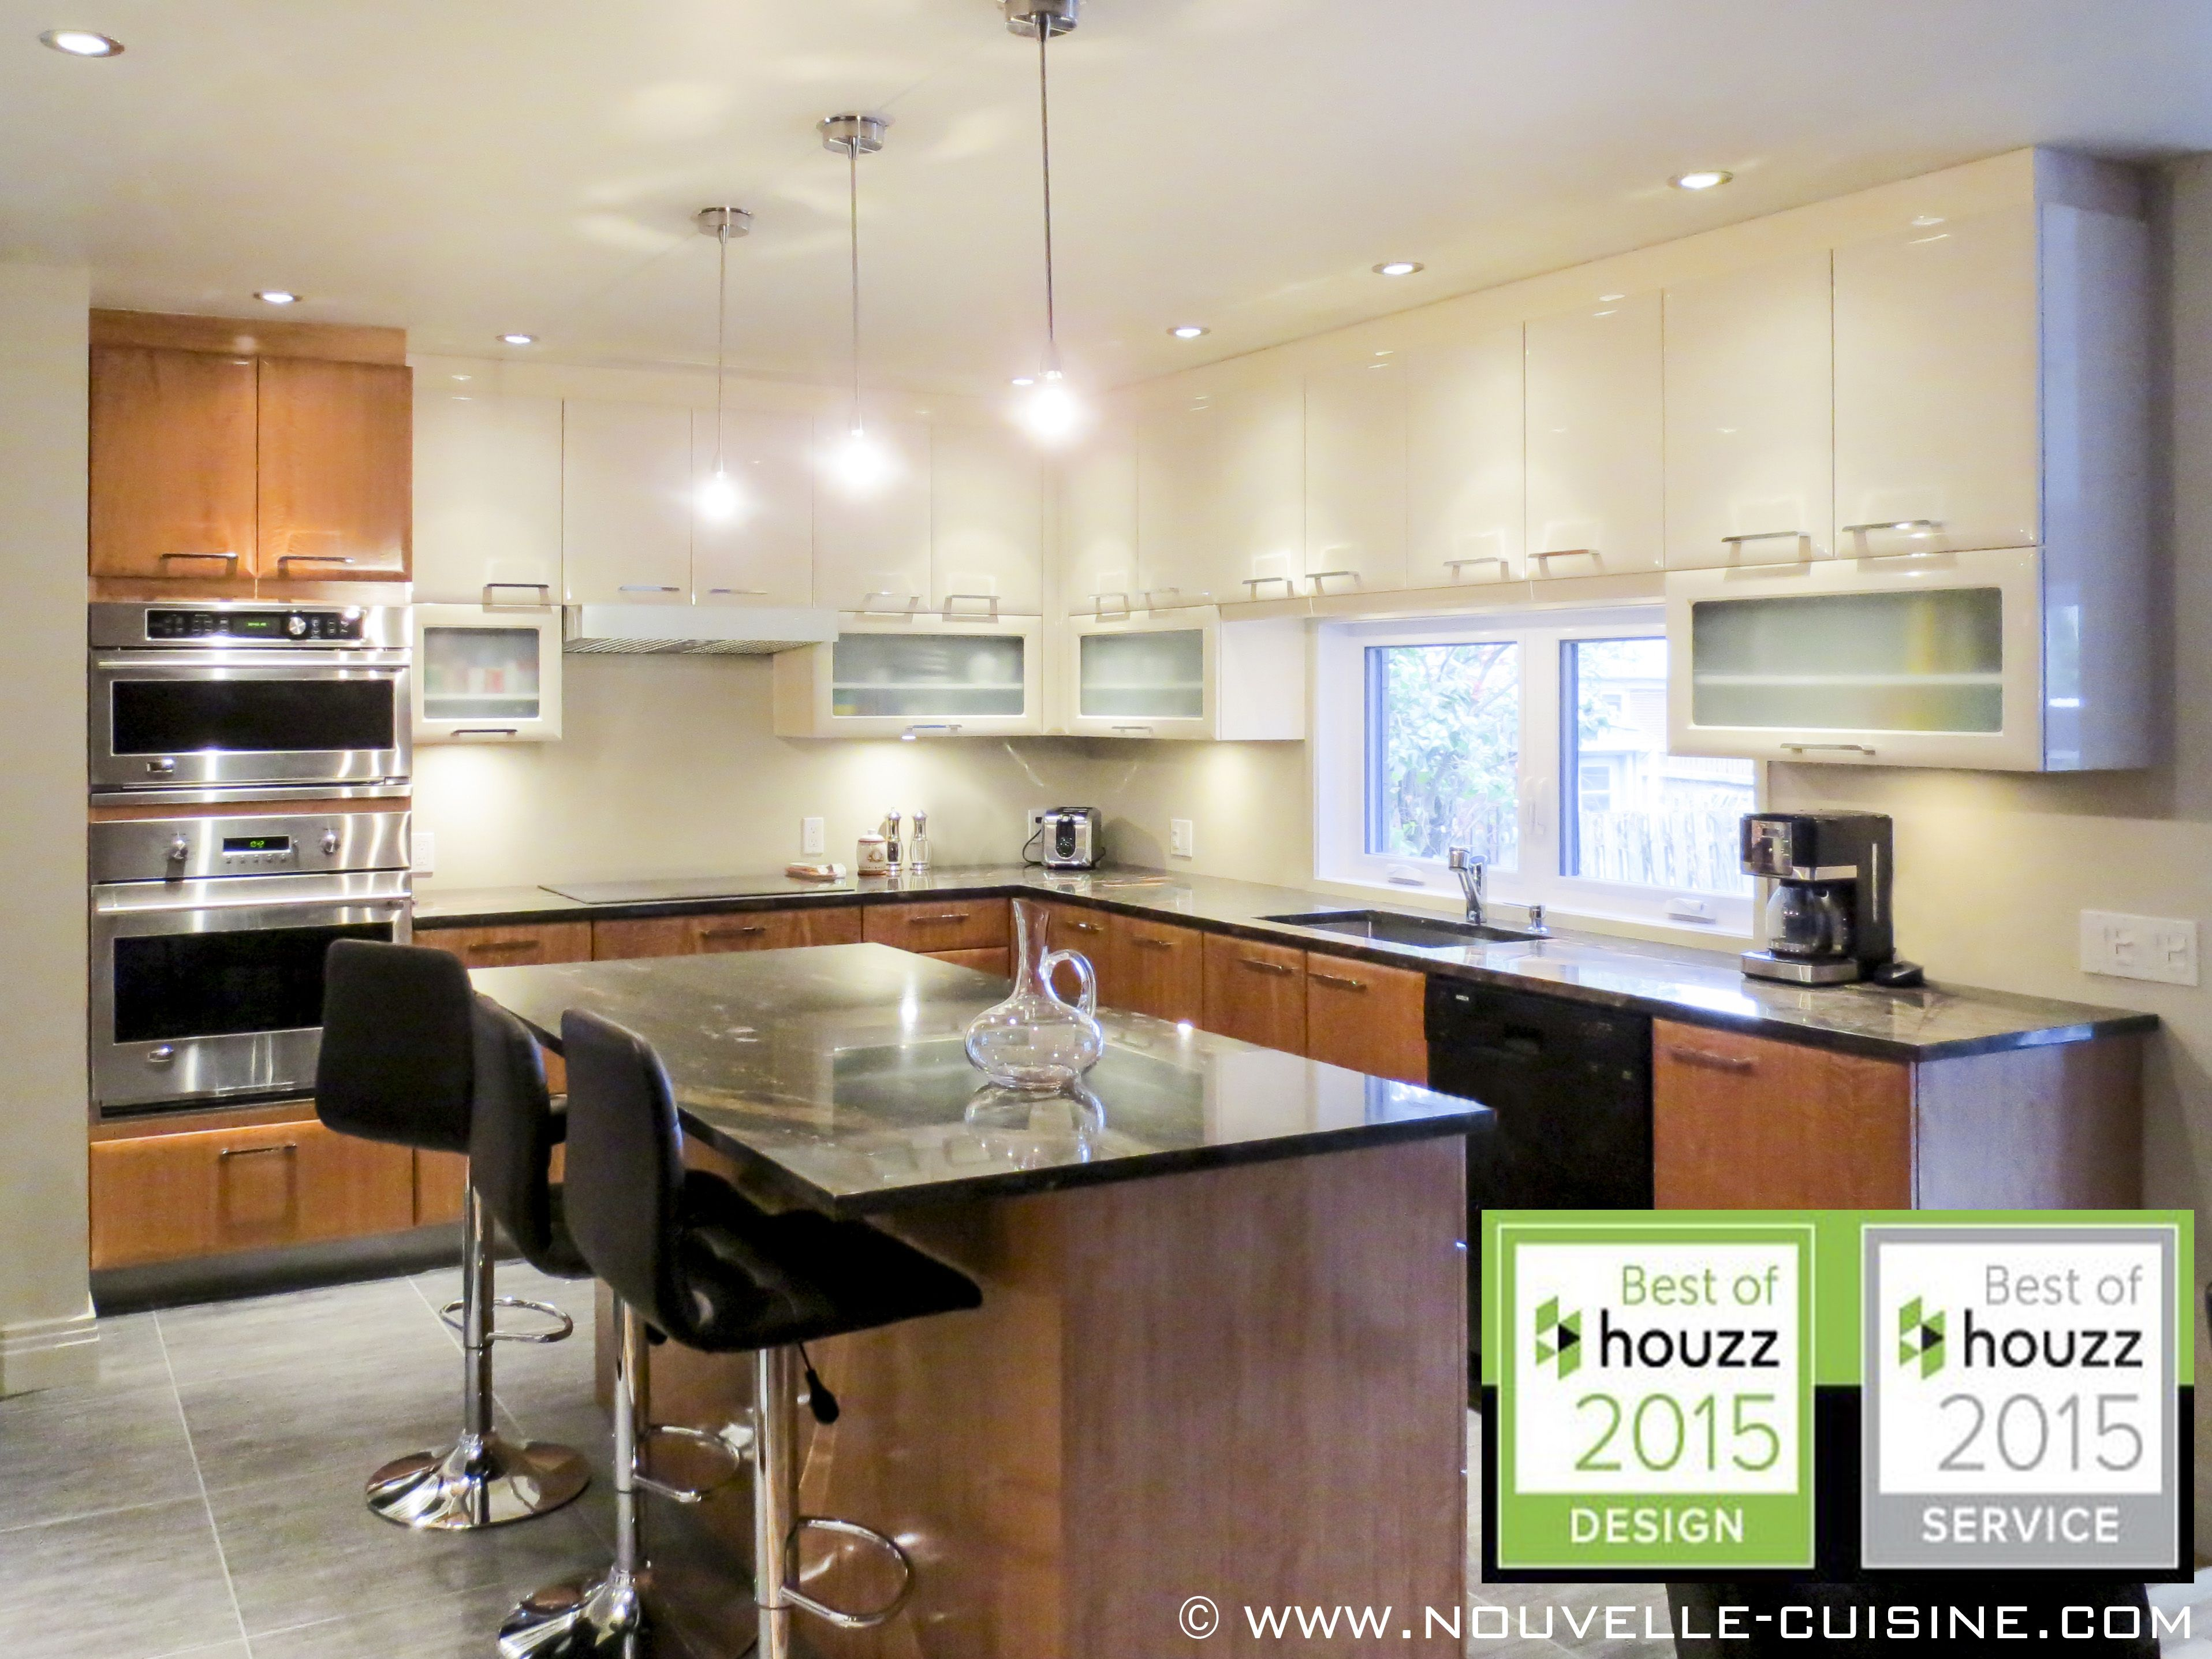 Quartz Countertops And Polymer Cabinets Can Be Found In This Modern Kitchen Comptoirs En Quartz Et Armoires En Polymere Peuvent Etre Sweet Home Kitchen Home